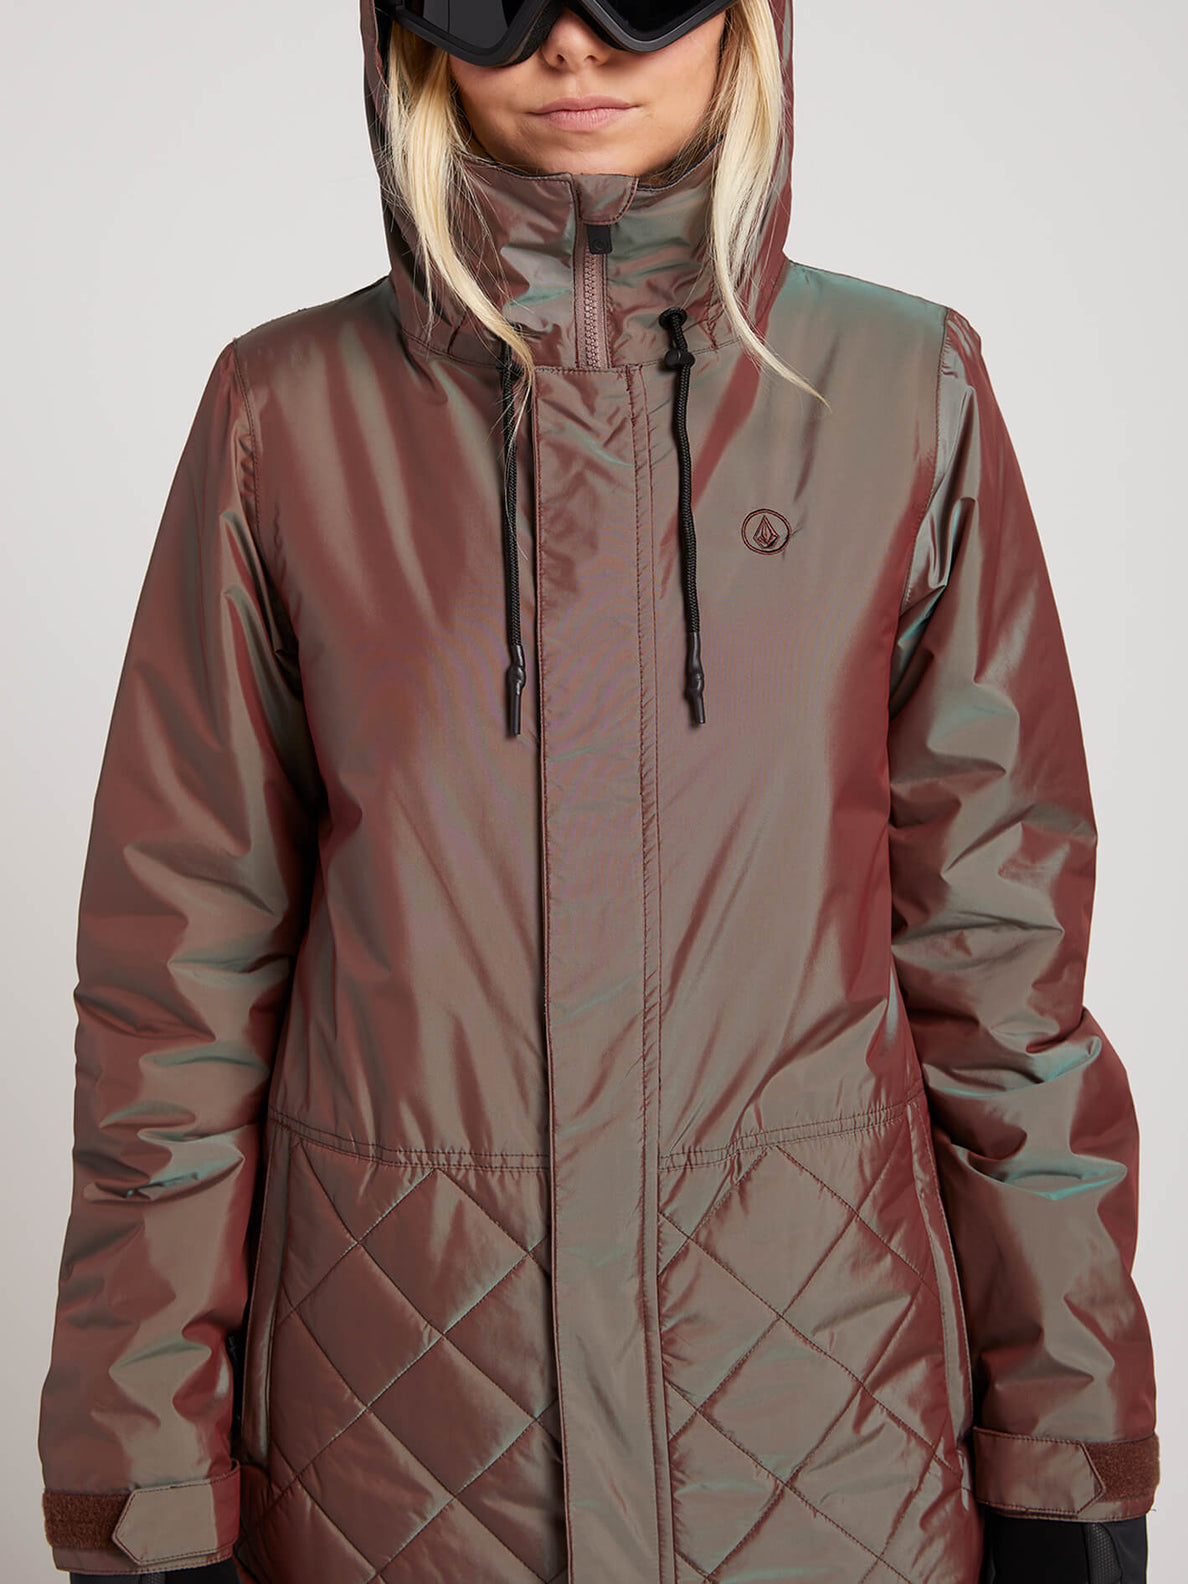 Winrose Insulated Jacket In Iridescent Magenta, Alternate View